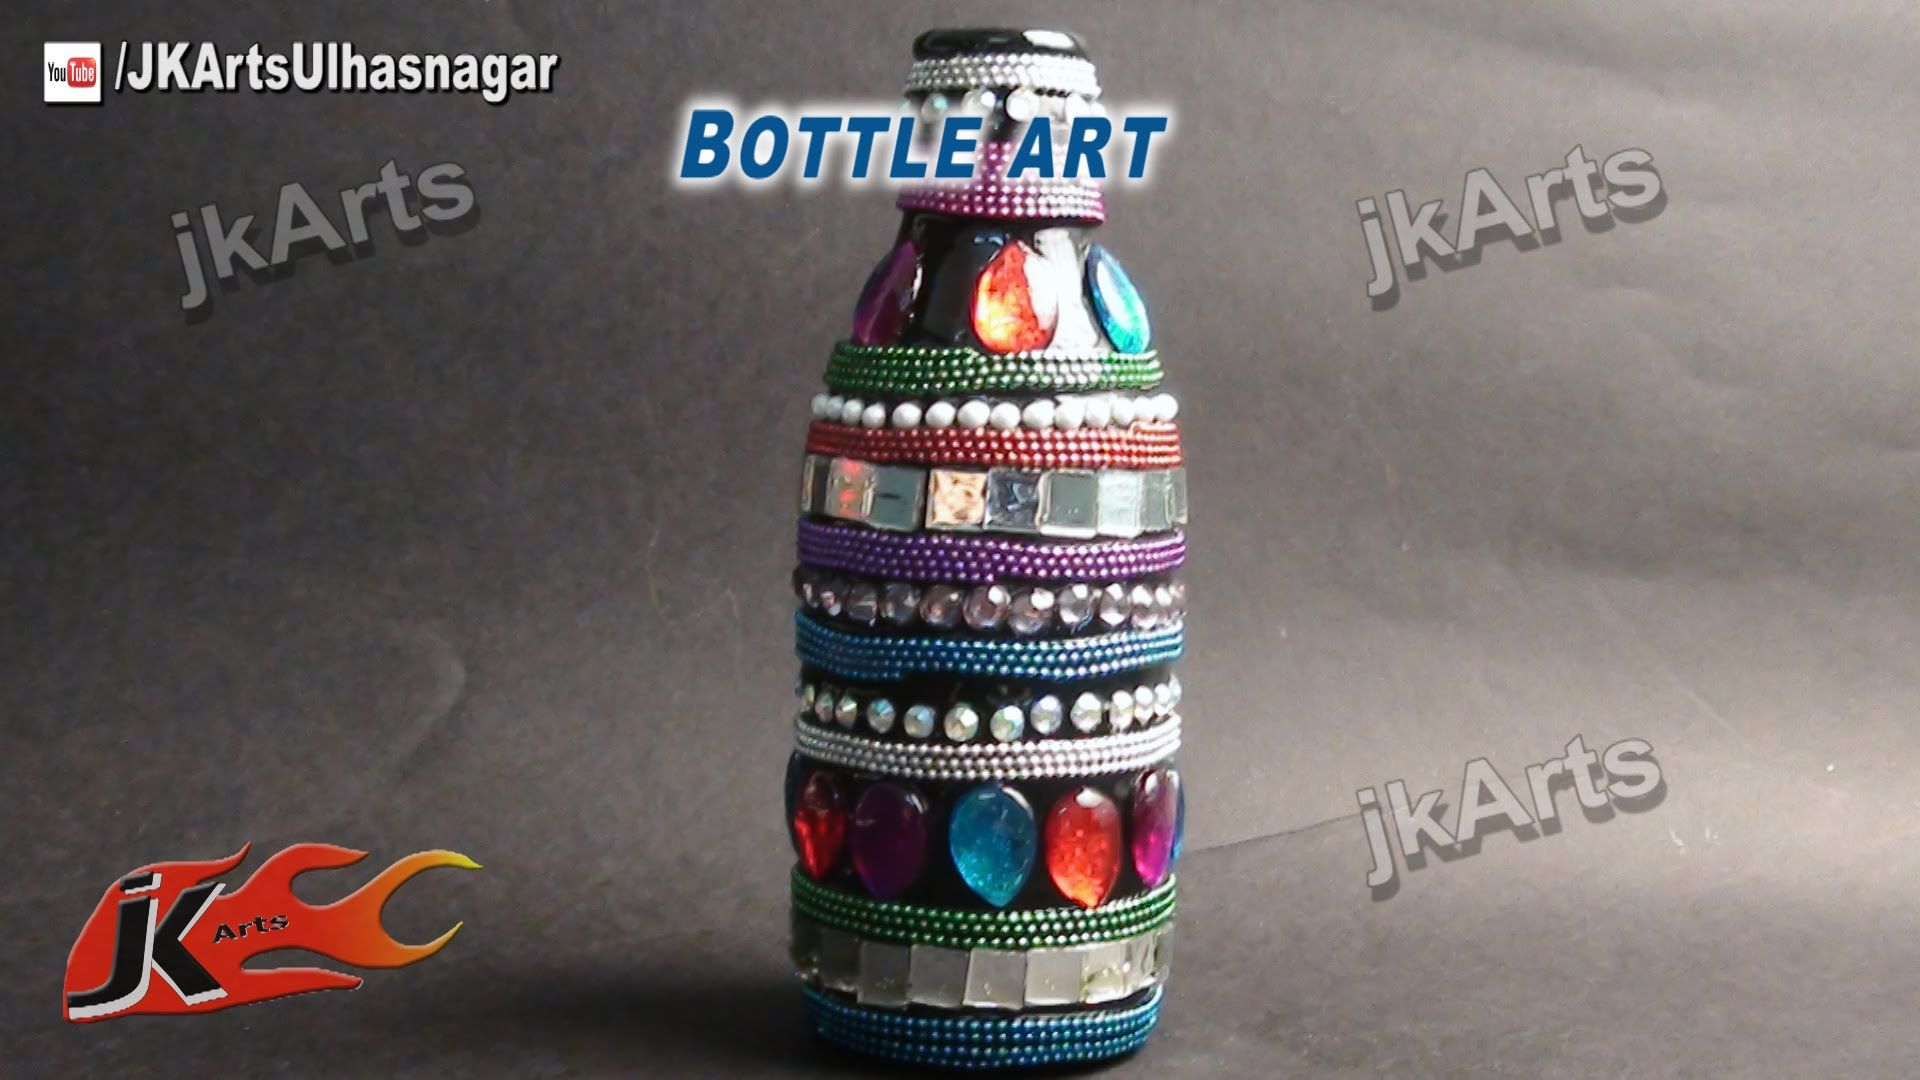 Decoration Ideas With Glass Bottles How To Decorate Glass Bottle  Bottle Art   Jk Arts 506